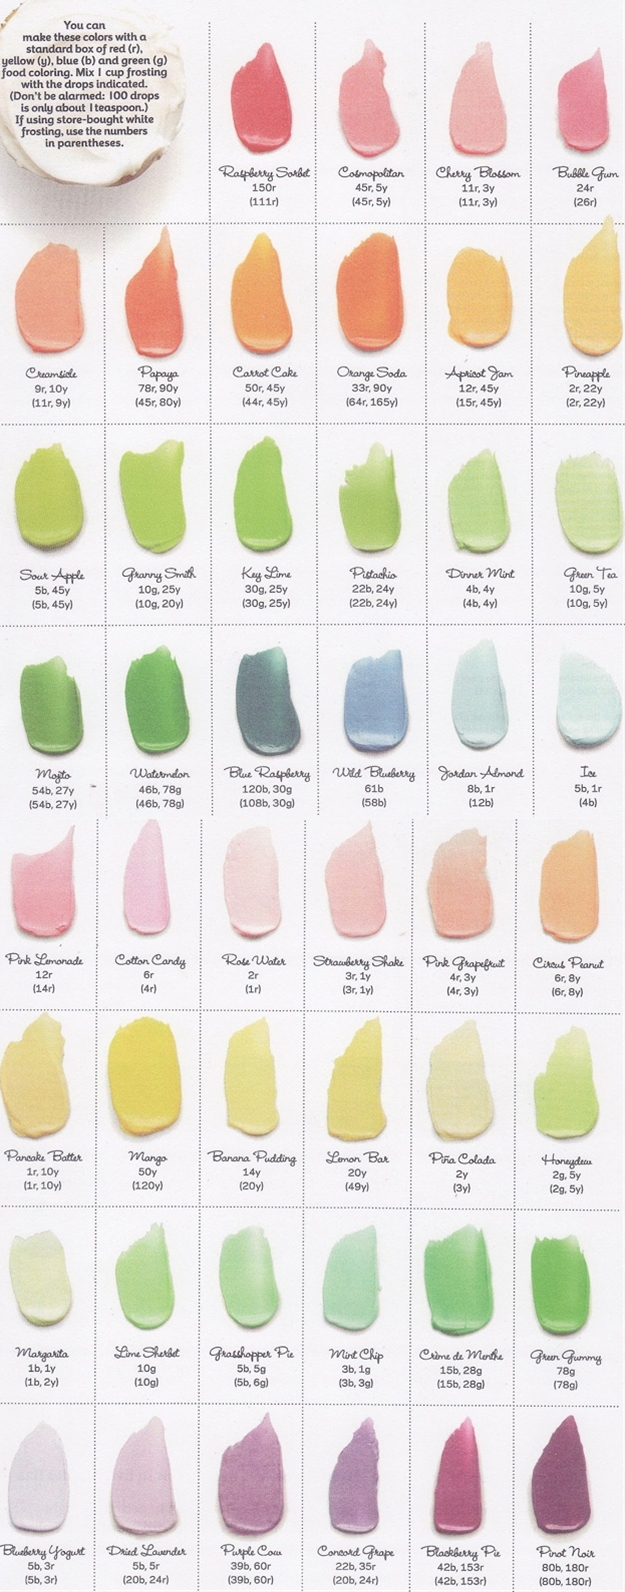 Food Network frosting chart telling you how many drops of each color (red, blue, yellow, green) you need to get the icing shade you want!